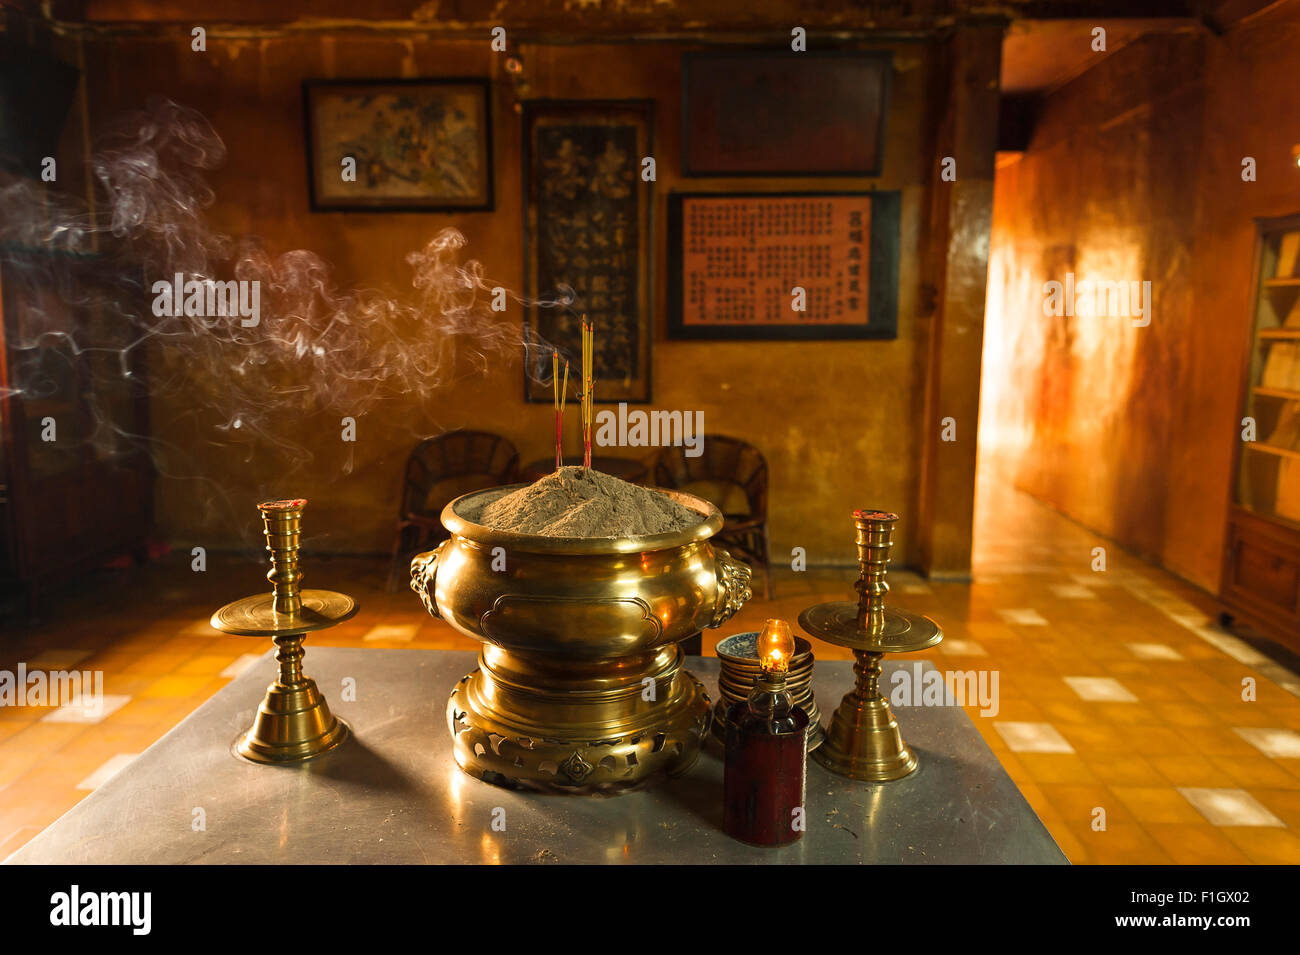 Vietnam temple incense, in the Giac Vien Pagoda in north Cholon incense sticks planted in a brass urn gently smoulder, - Stock Image